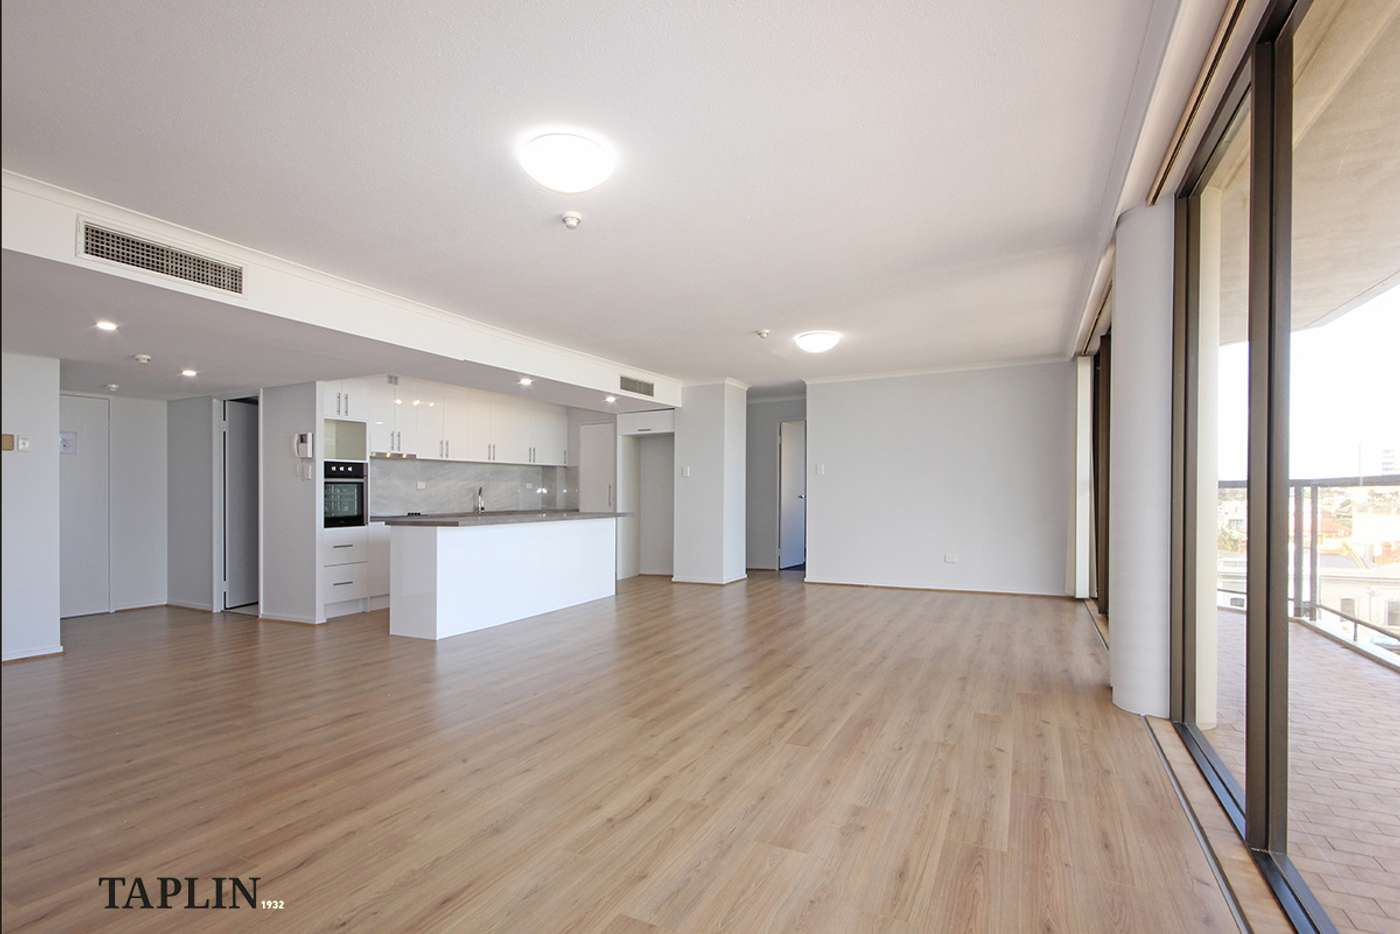 Main view of Homely apartment listing, 52/5-11 Colley Terrace, Glenelg SA 5045